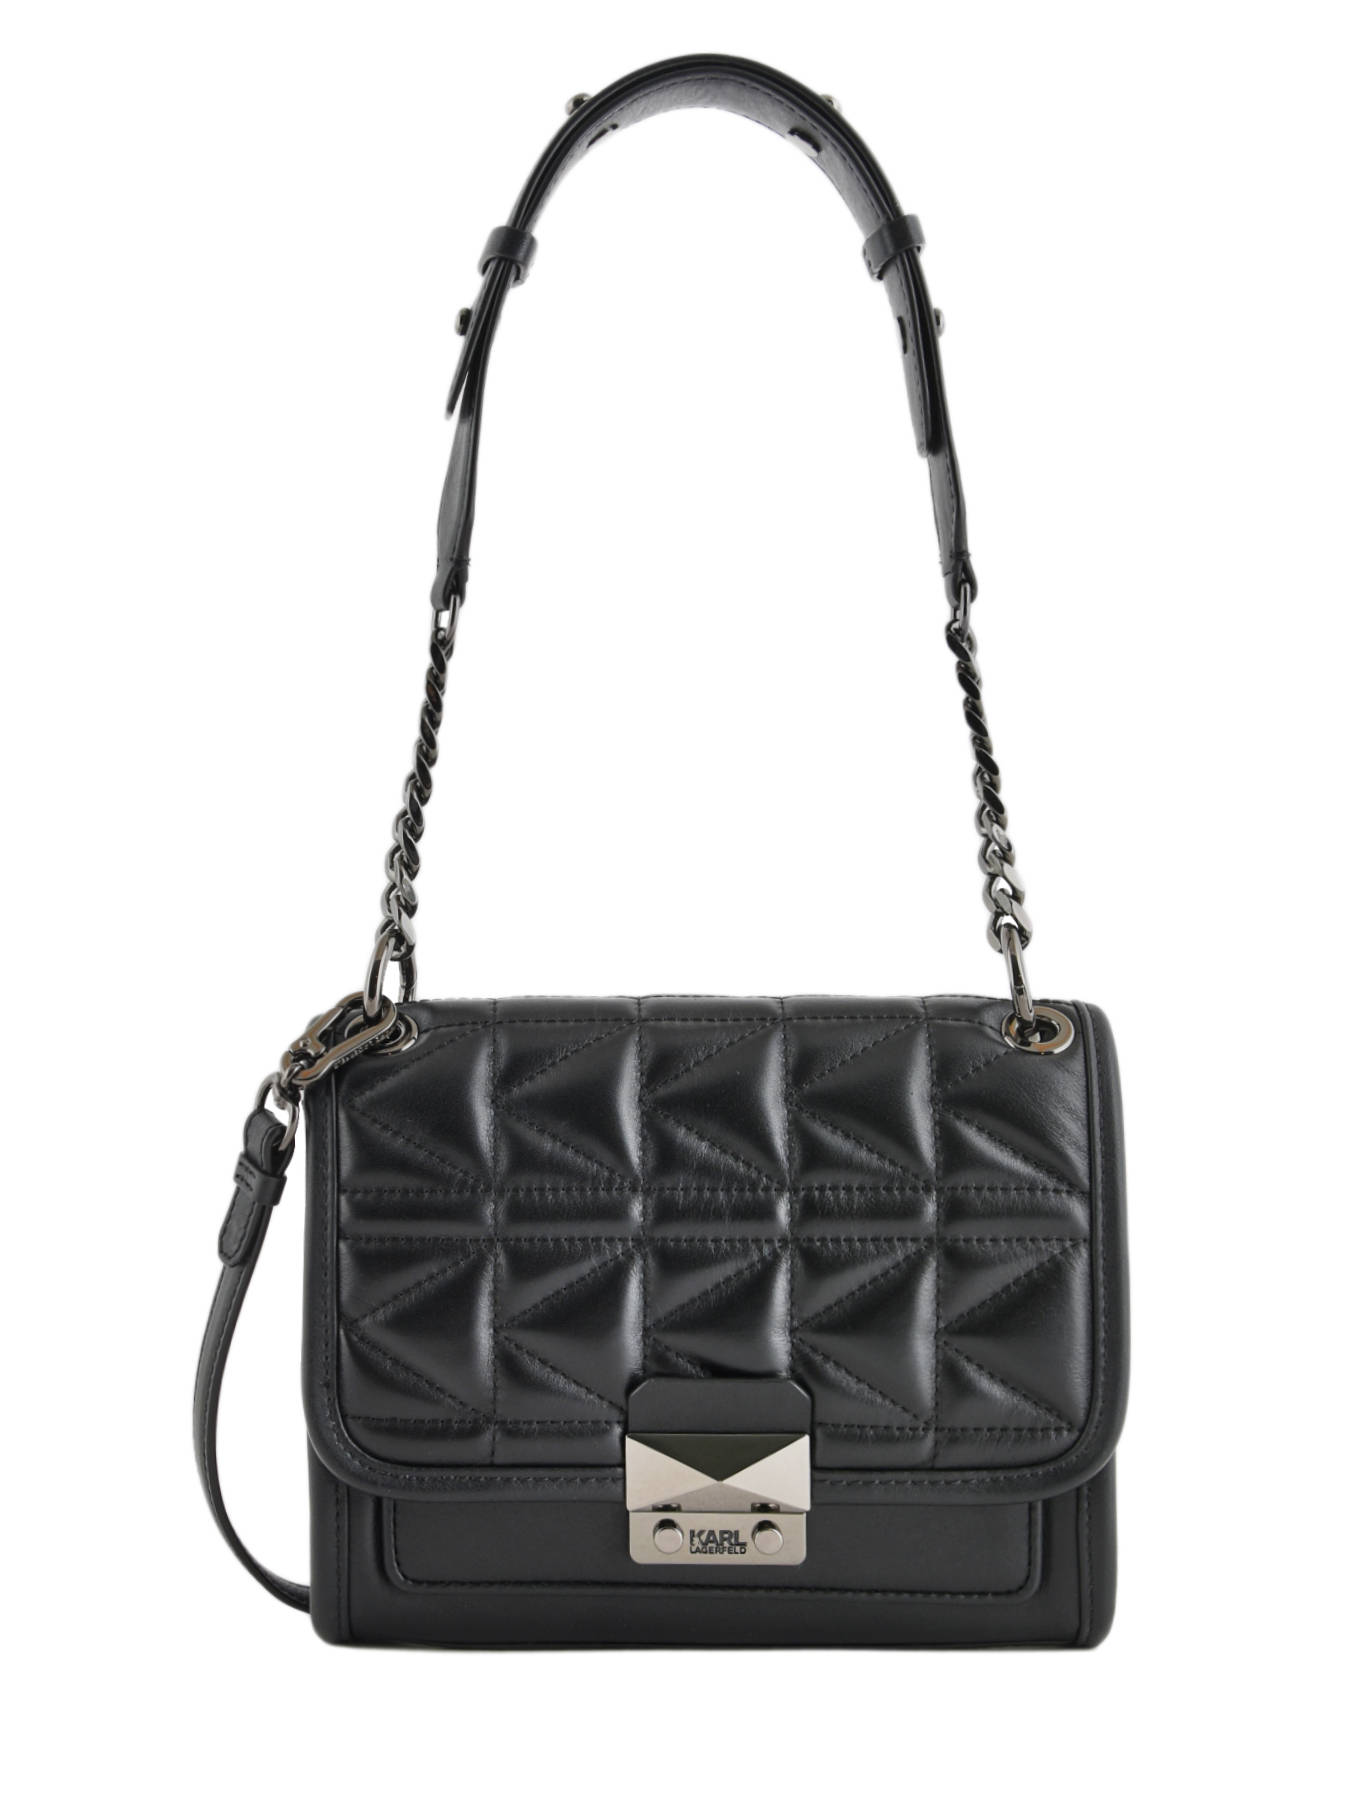 fashion styles nice shoes lace up in Karl Lagerfeld Shoulder bag COKW0015 - best prices